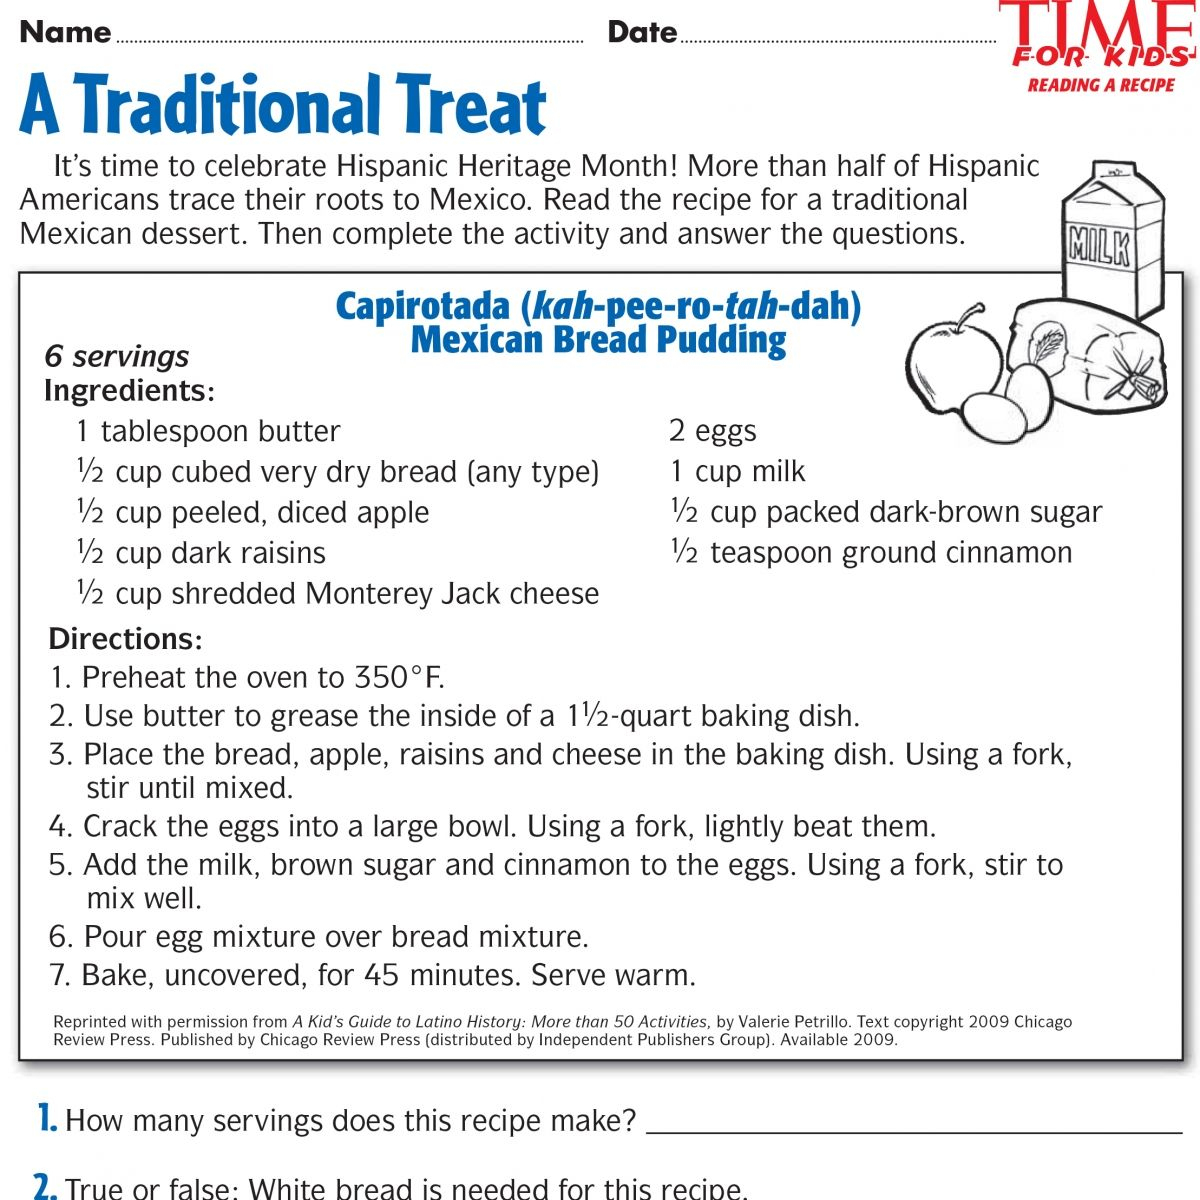 Printables For Hispanic Heritage Month | Time For Kids | Ideas | Hispanic Heritage Month Printable Worksheets